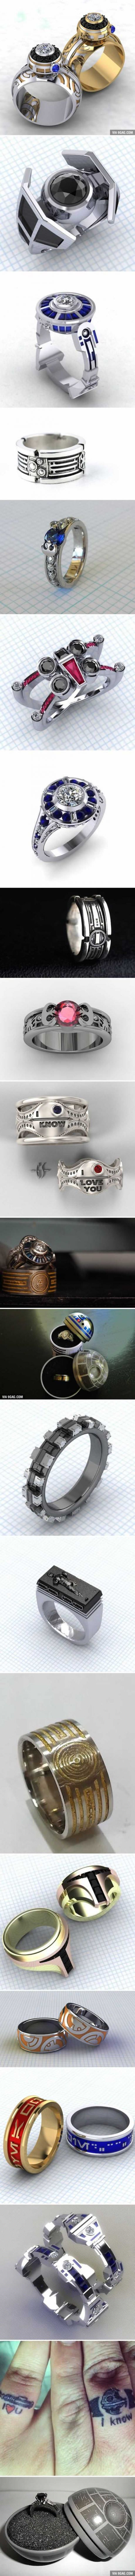 21 Most Romantic Star Wars Wedding Rings (scheduled via http://www.tailwindapp.com?utm_source=pinterest&utm_medium=twpin)